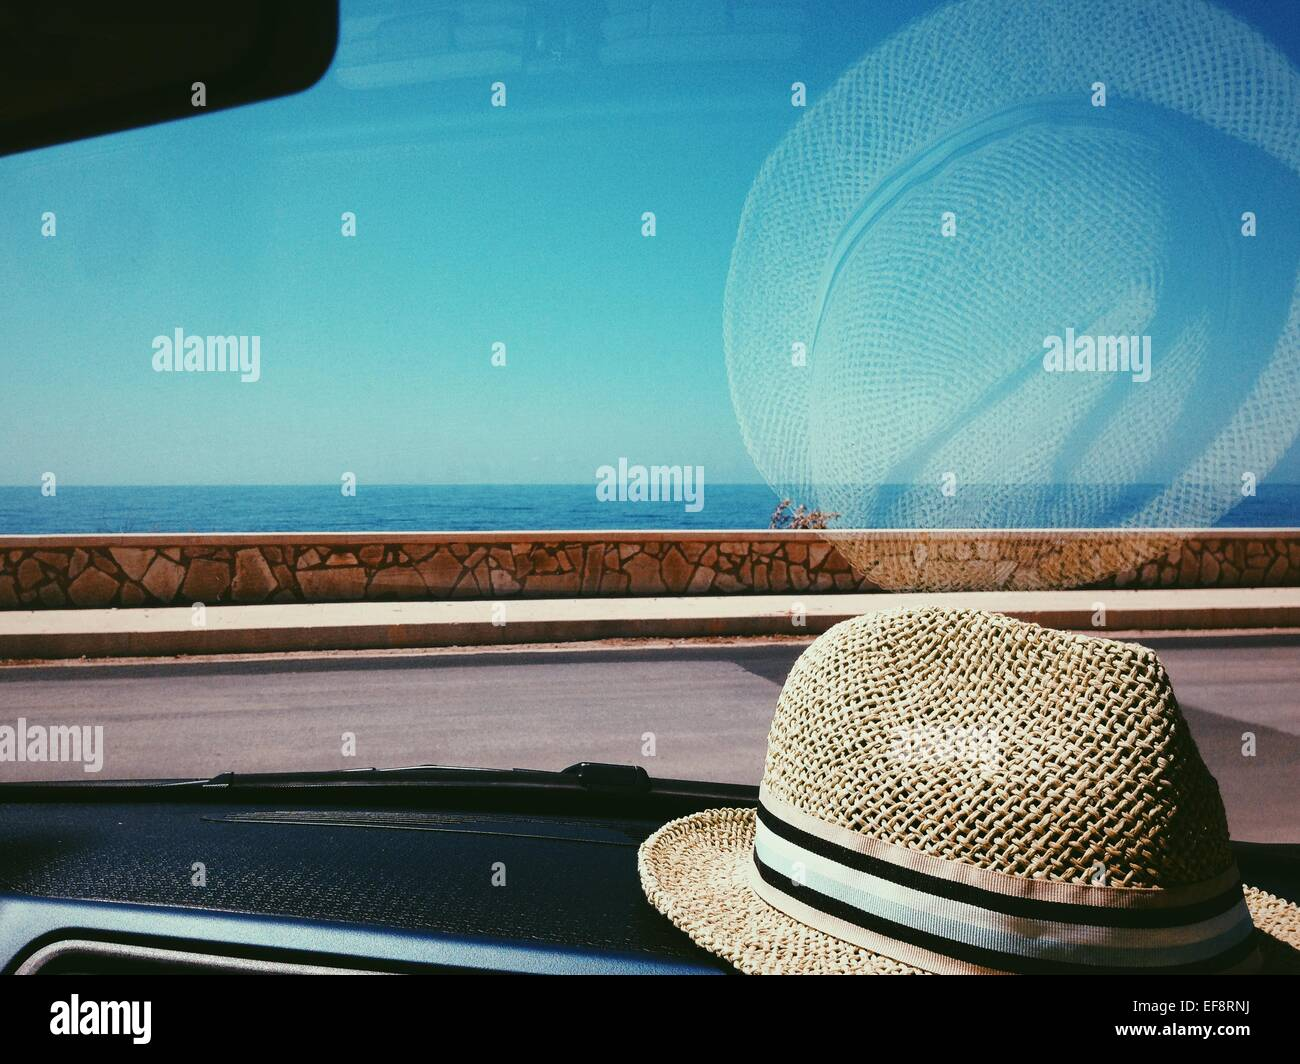 Straw hat on dashboard of car - Stock Image